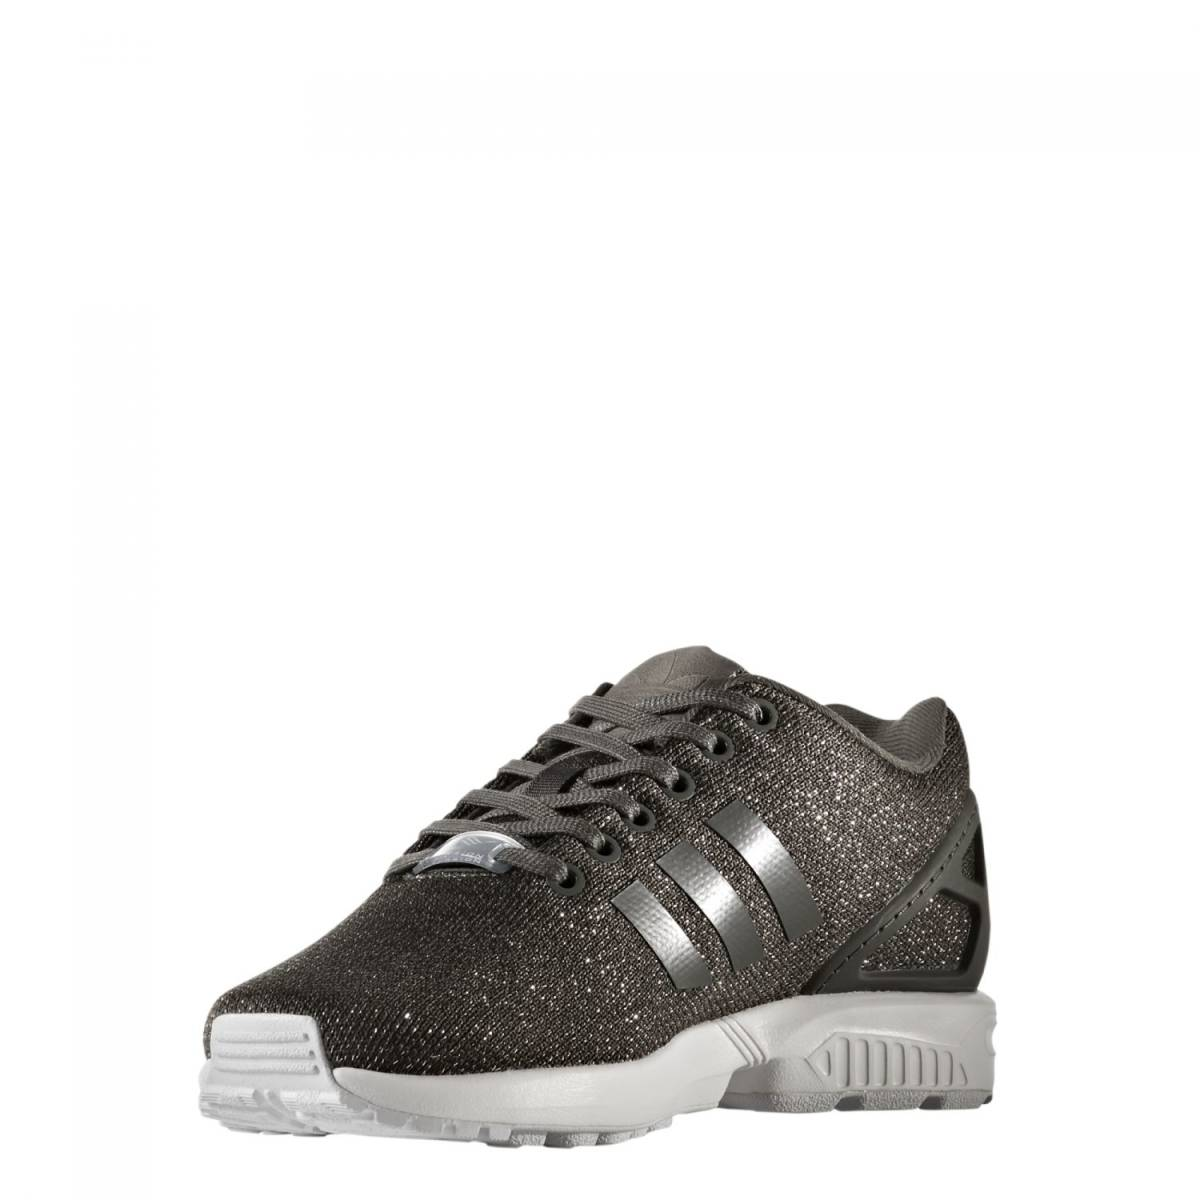 Adidas Zx Flux Schuhe Red pro mo.at